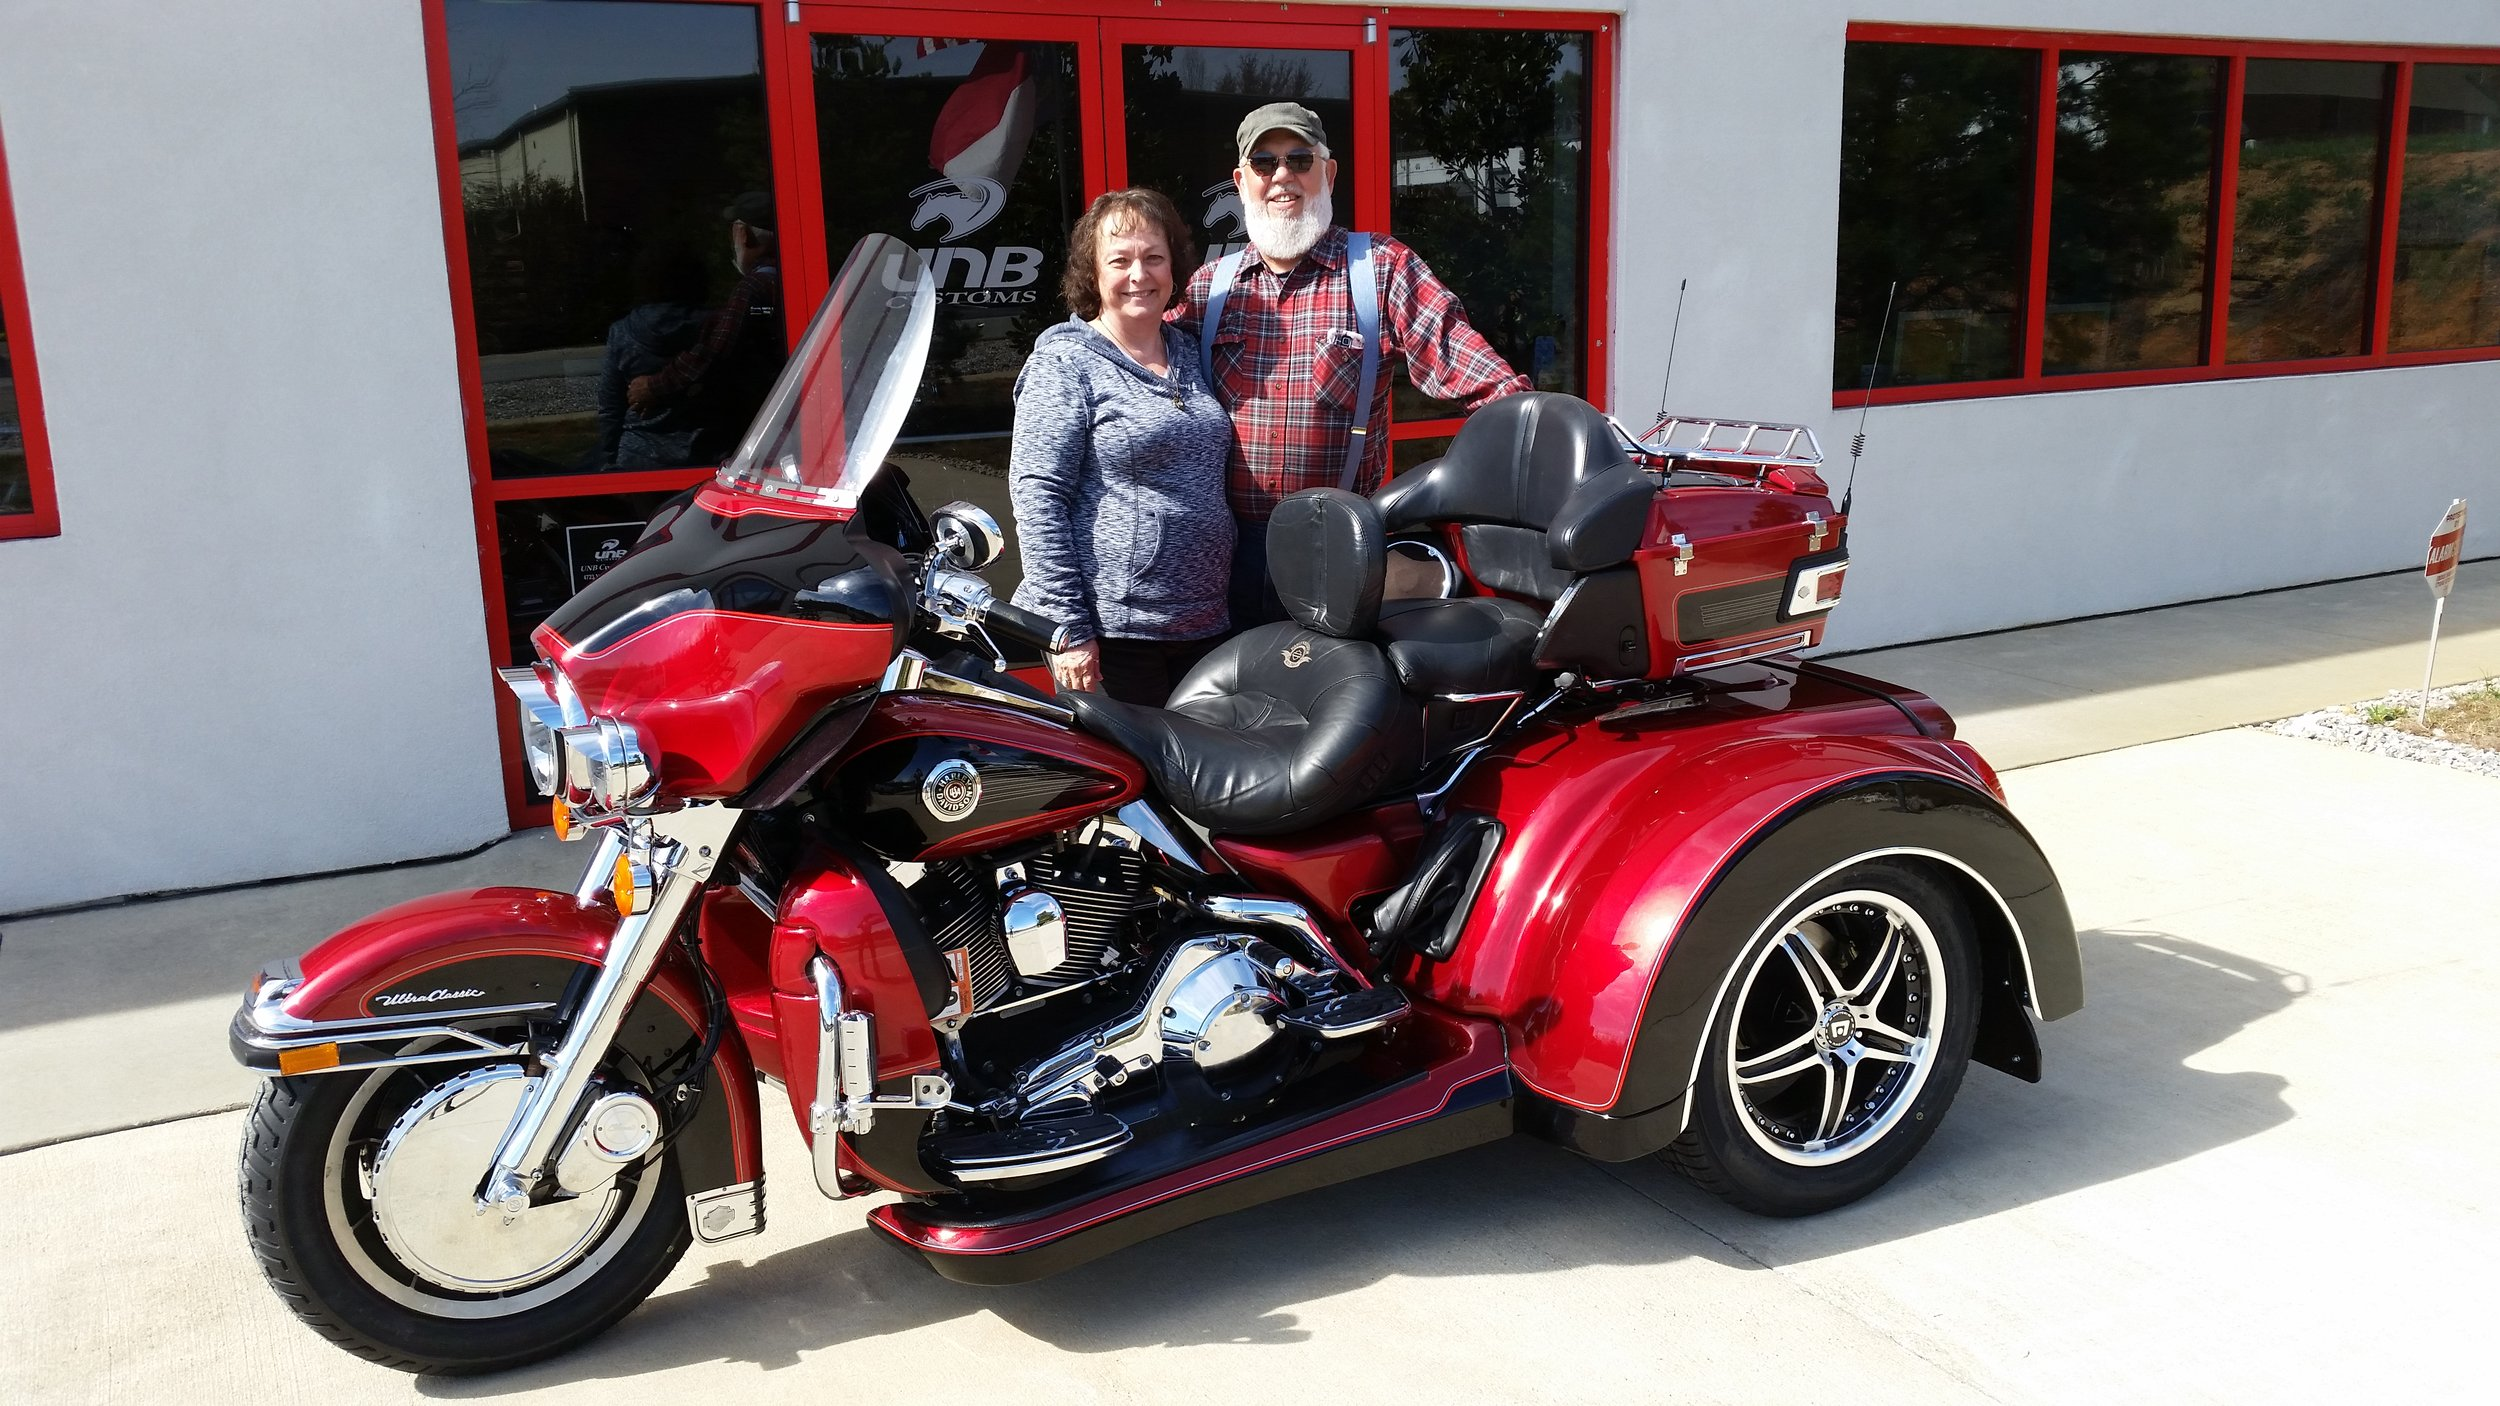 our friends with their Harley Trike custom converted for them.jpg